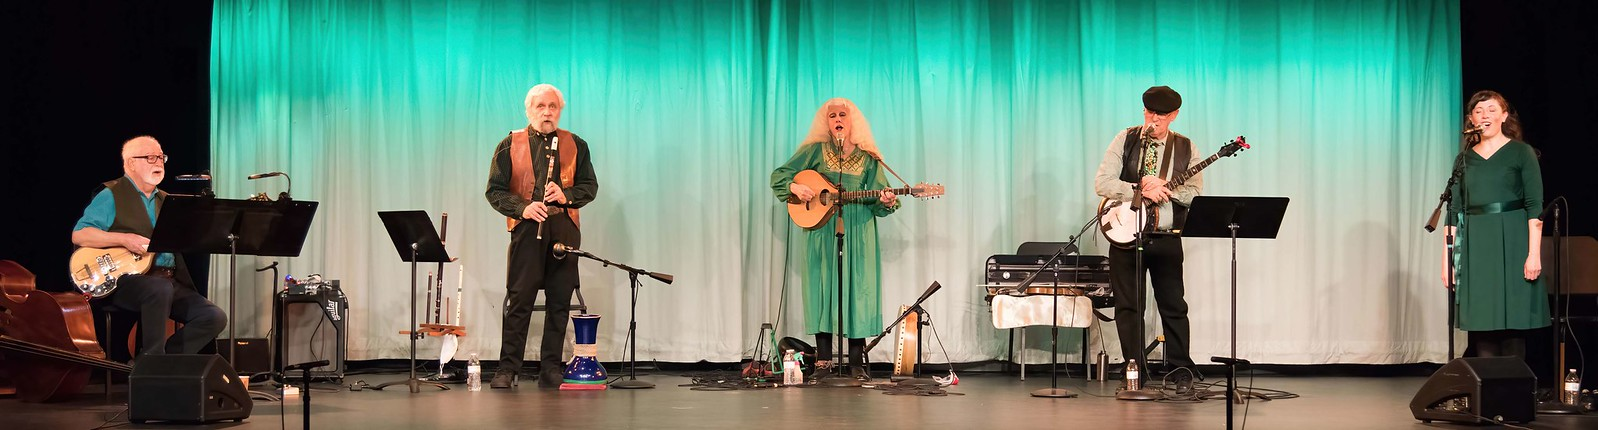 Iona: An Evening of Celtic Song & Dance